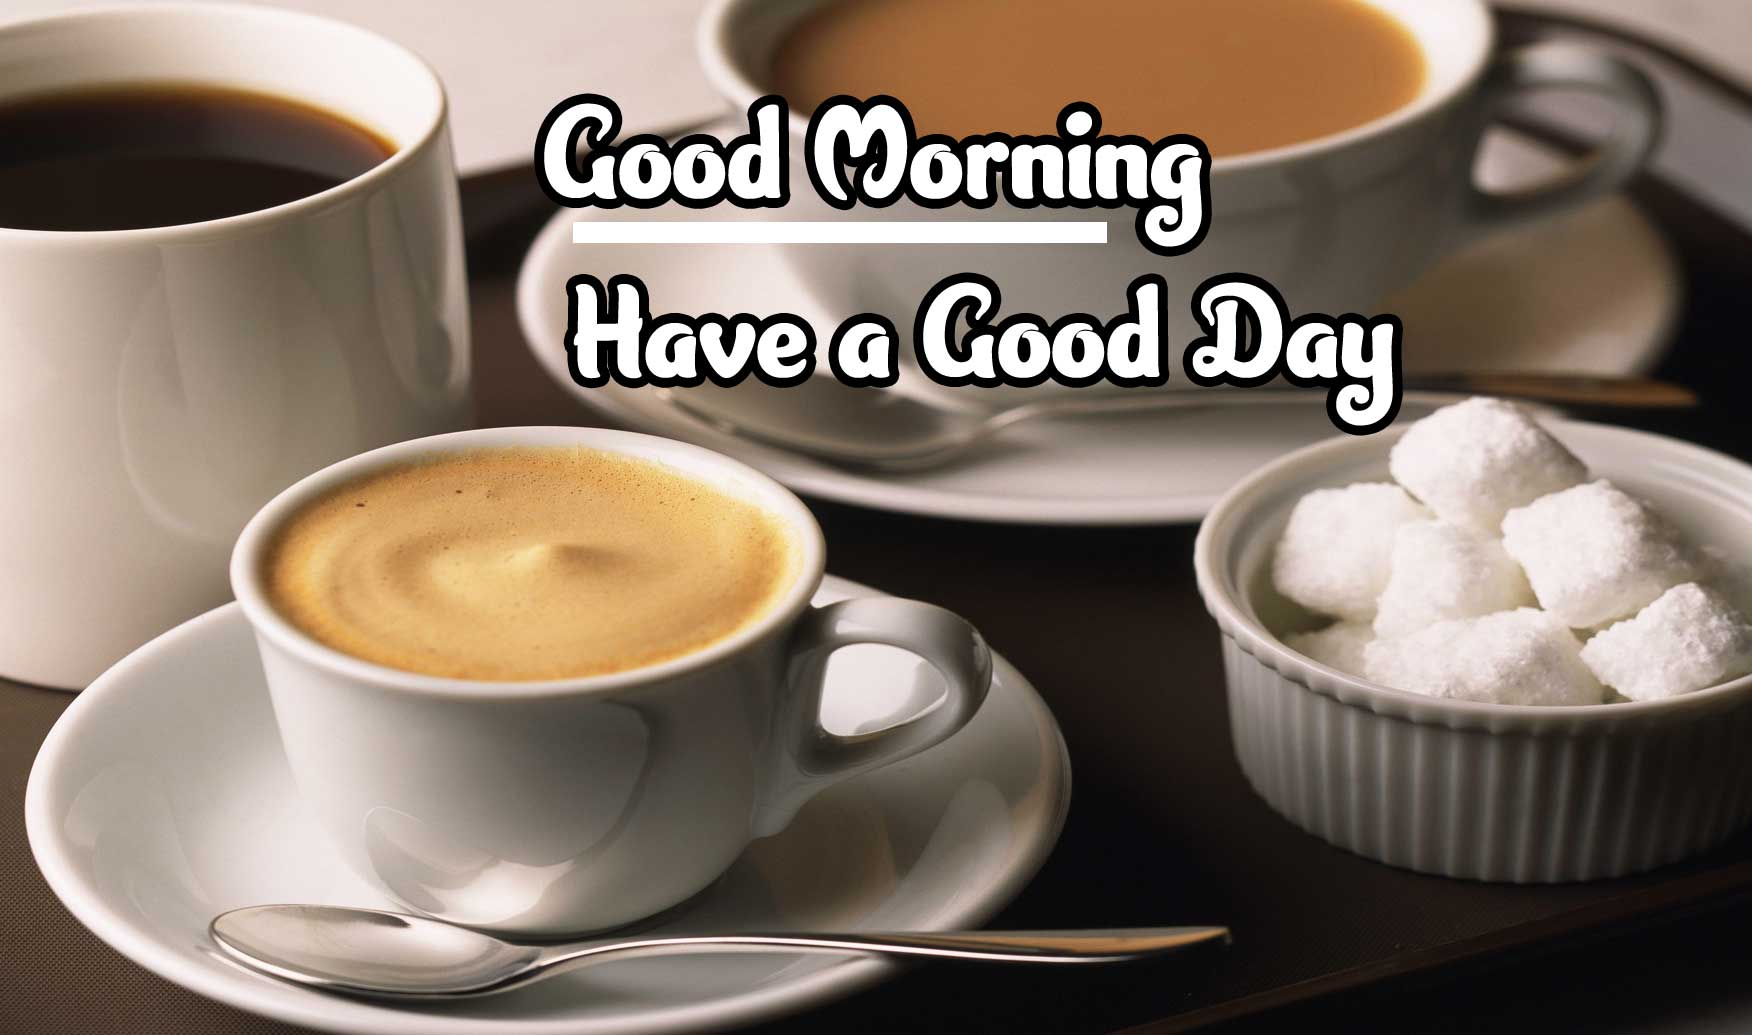 Good Morning Wishes Images 4K 1080p Pics Wallpaper Download